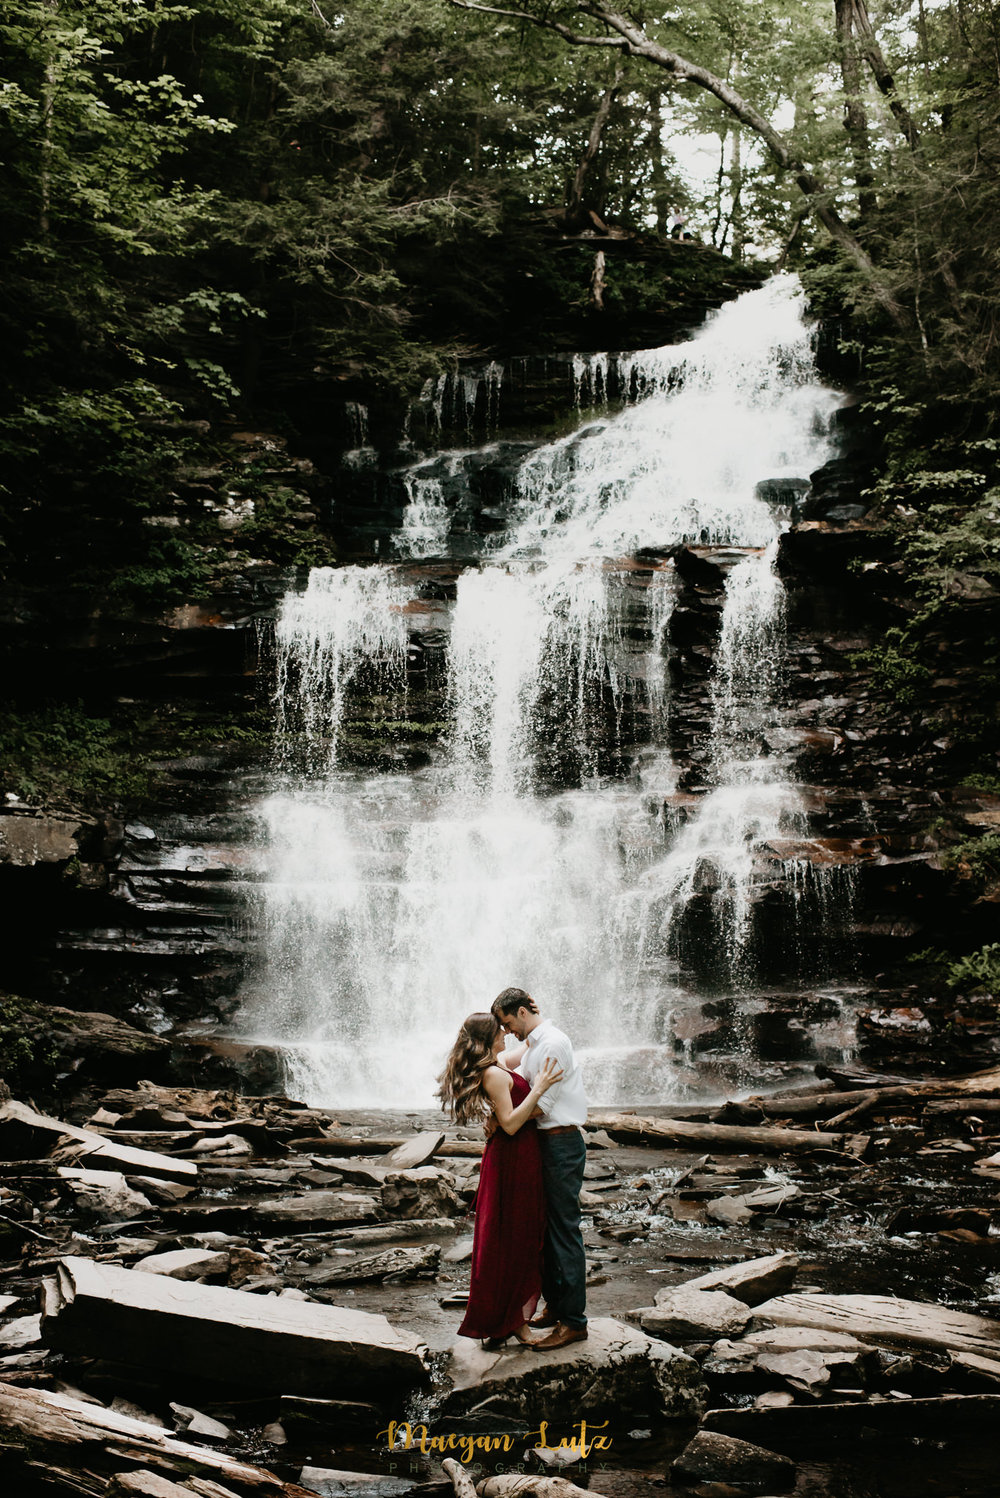 NEPA-Engagement-Wedding-Photographer-Session-at-Ricketts-Glen-State-Park-20.jpg